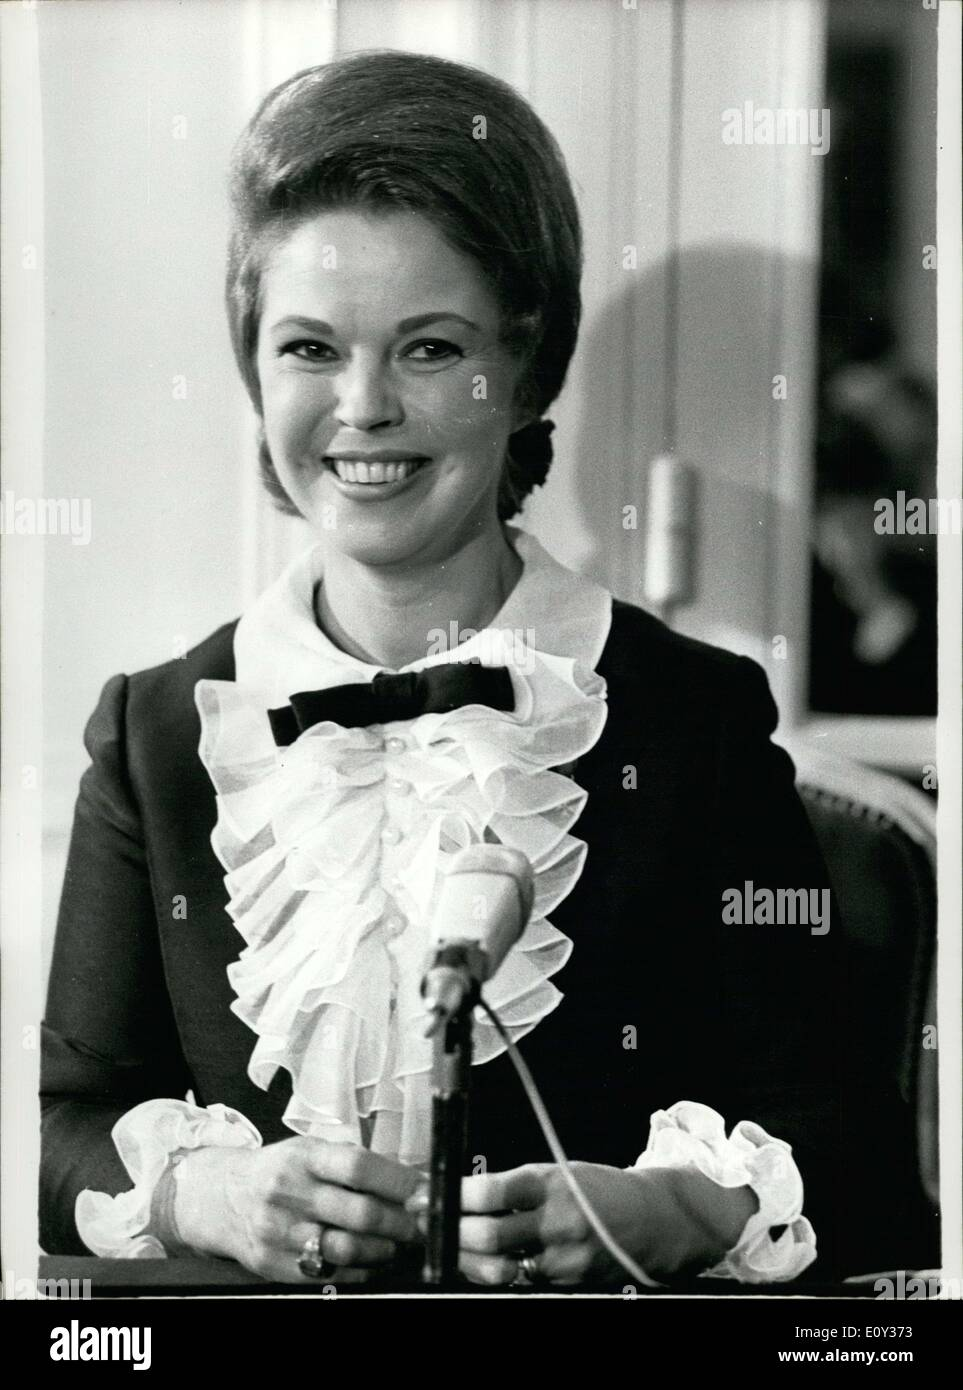 Sep. 12, 1968 - Shirley Temple, who was Hollywood's child prodigy, is on the campaign trail for Richard Nixon, Republican Presidential Candidate for the United States of America. She was in Paris on Thursday where she gave a press conference on the Athenian Plaza. - Stock Image